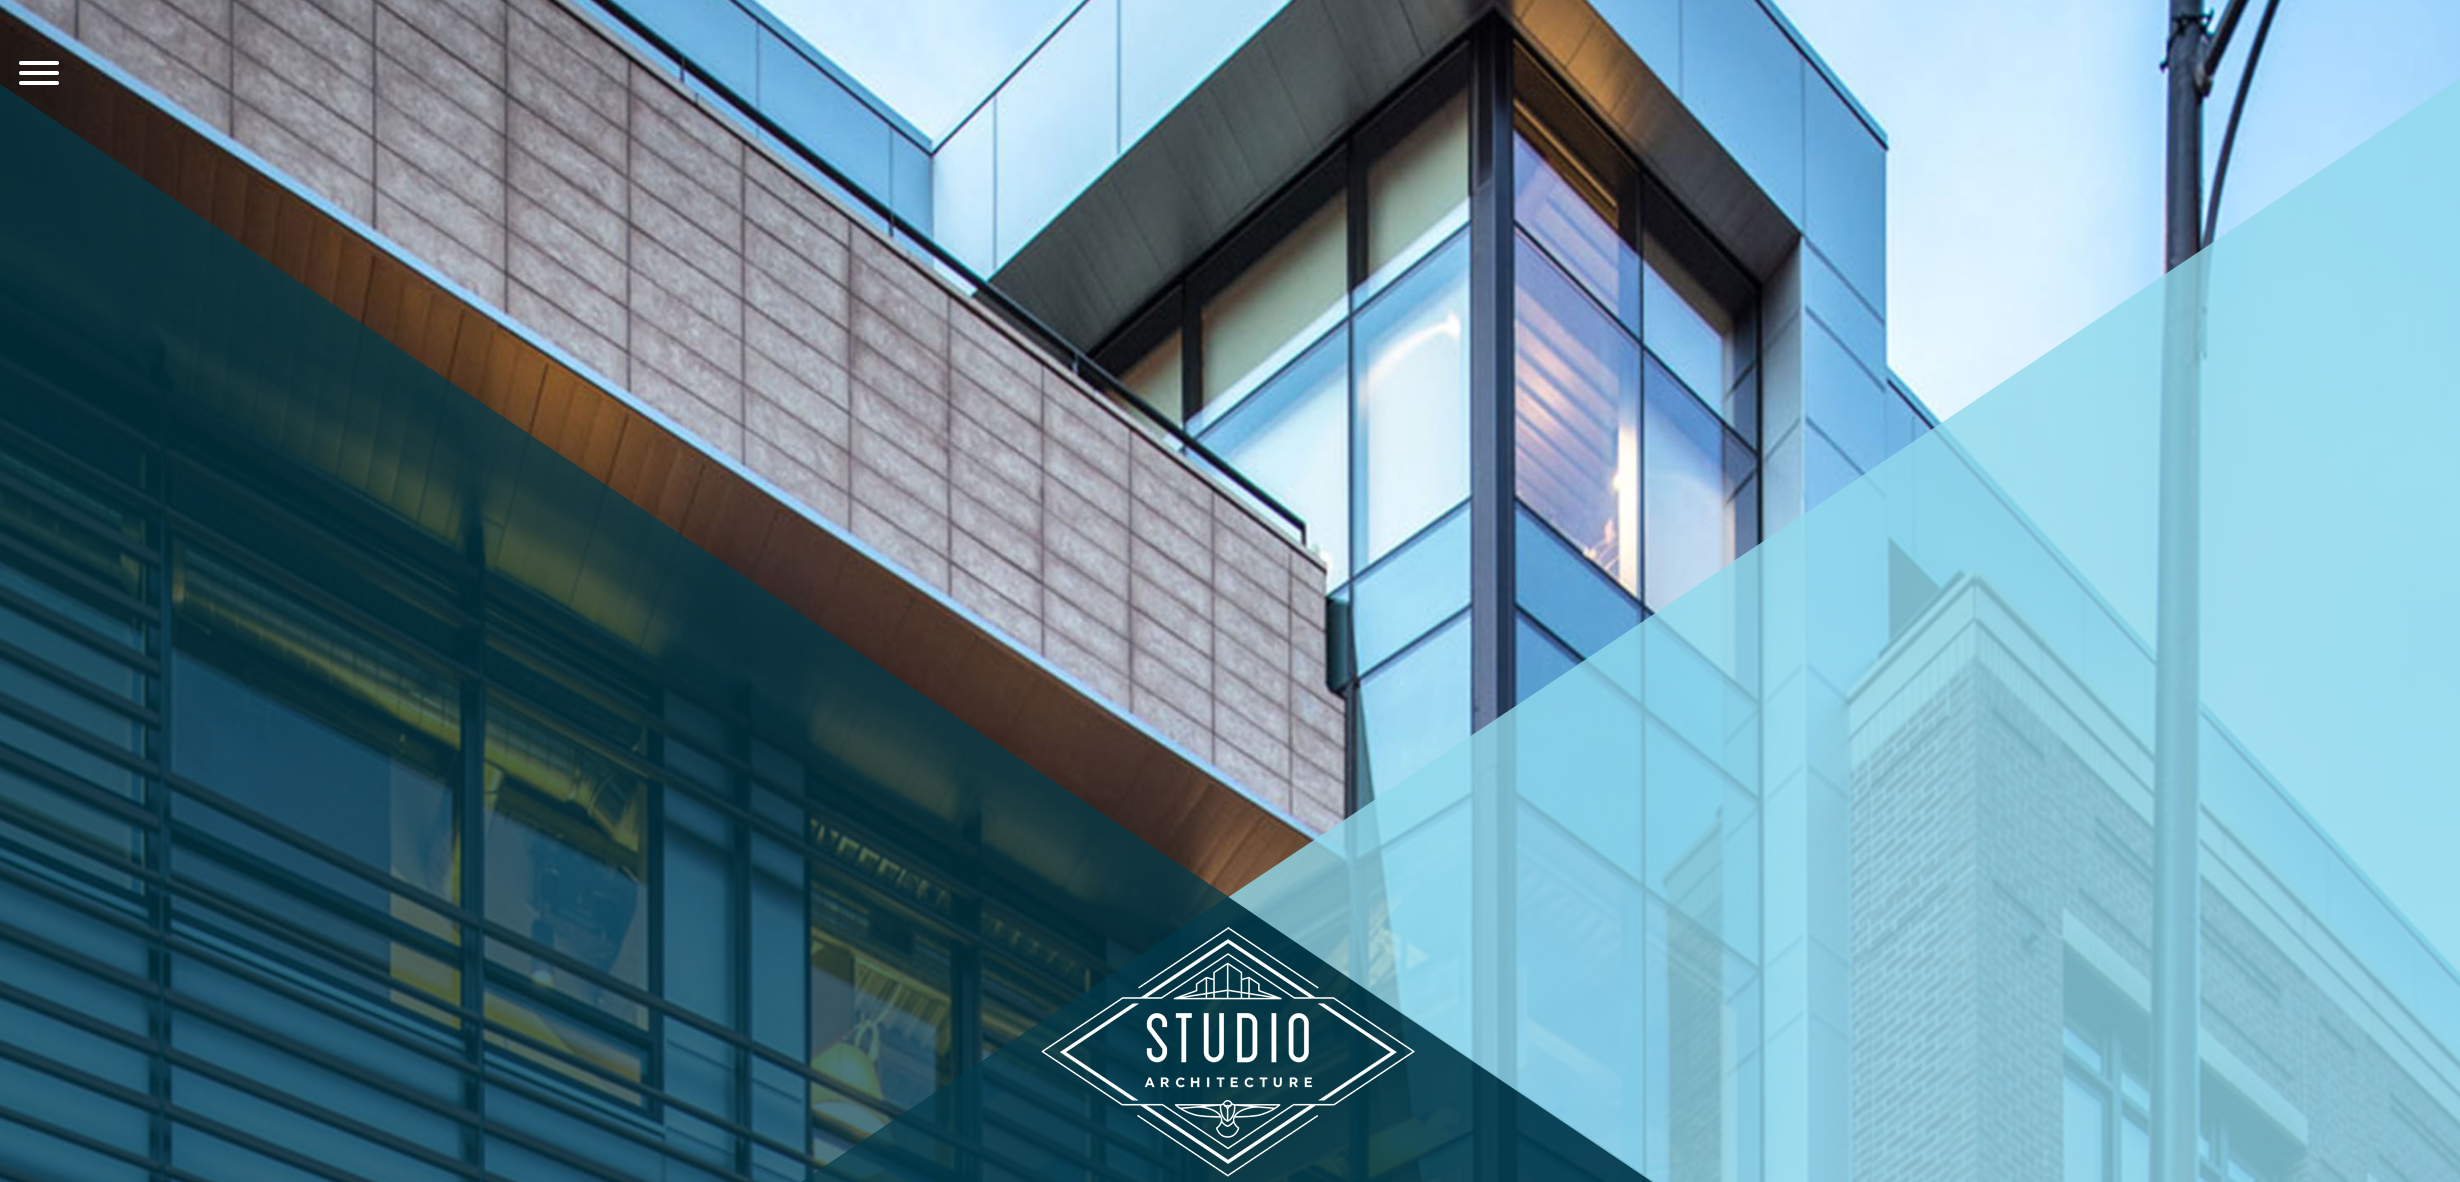 STUDIO Architecture hired Casa Criss for marketing direction and business development assistance. One of the first needs for STUDIO was a new website, one of the most important marketing tools for any professional services firm.   Casa Criss: Concept, creative direction, copy Visual Foundry: Design, development   www.thestudioarchitecture.com